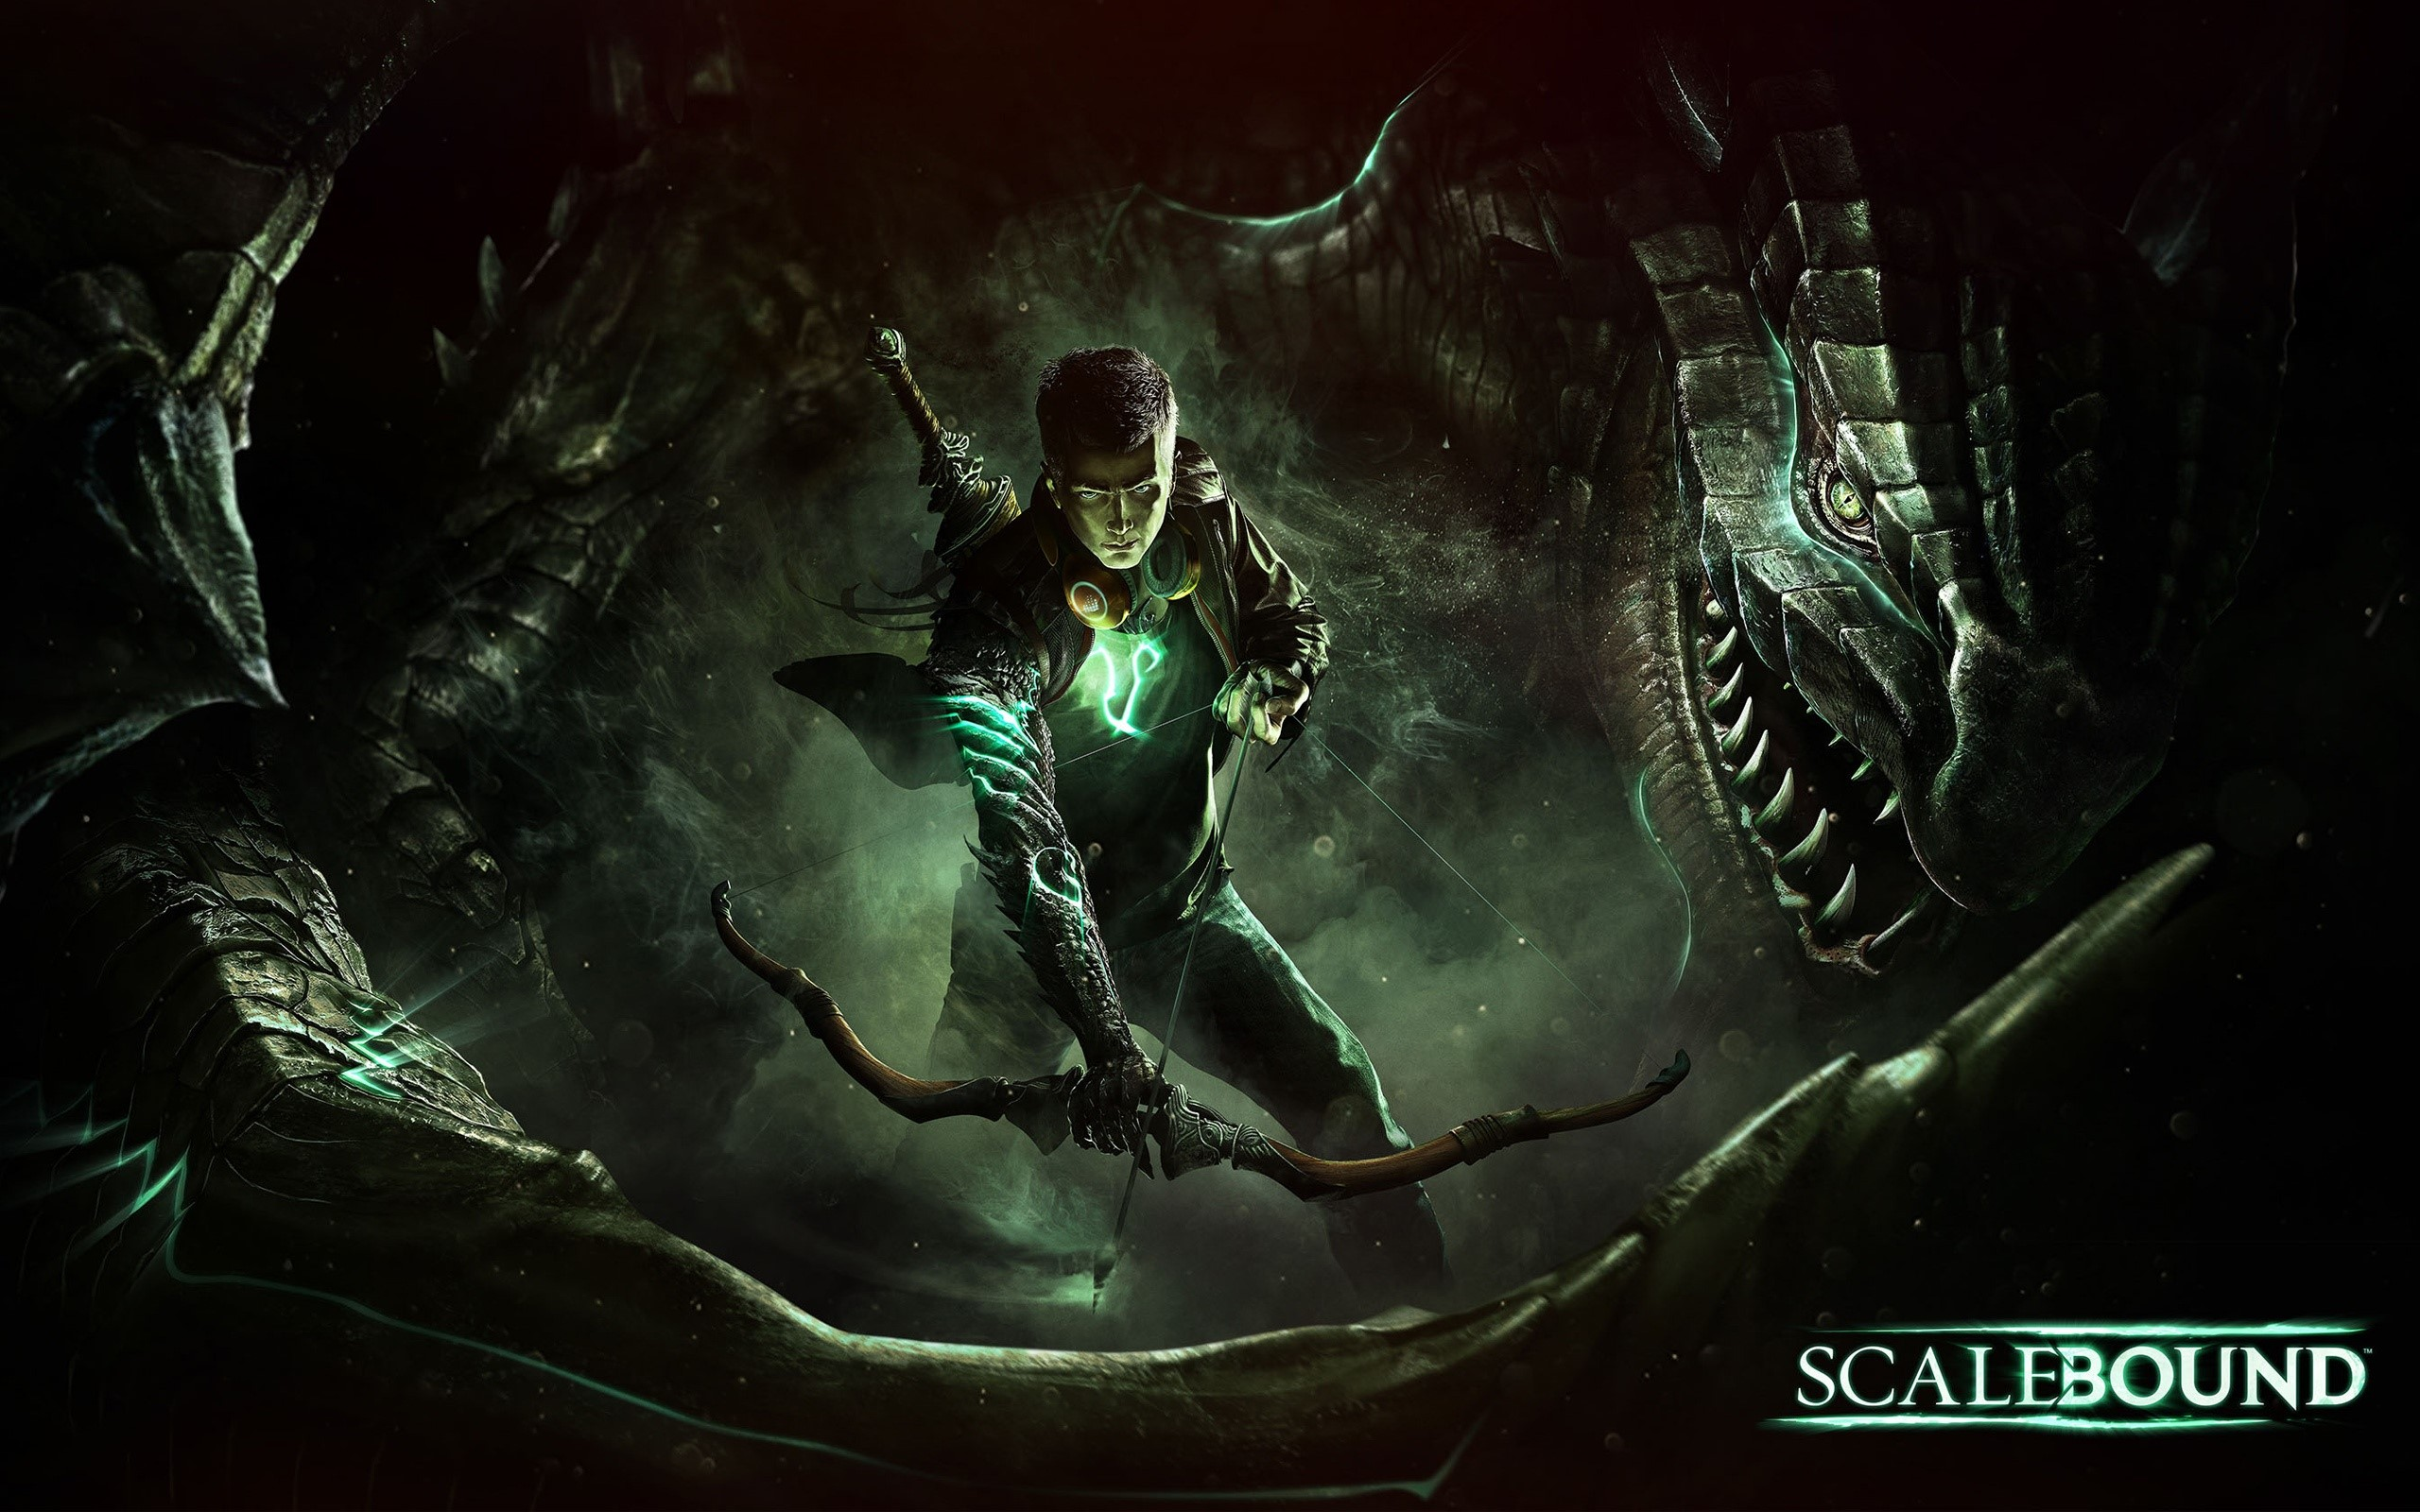 Wallpaper Scalebound